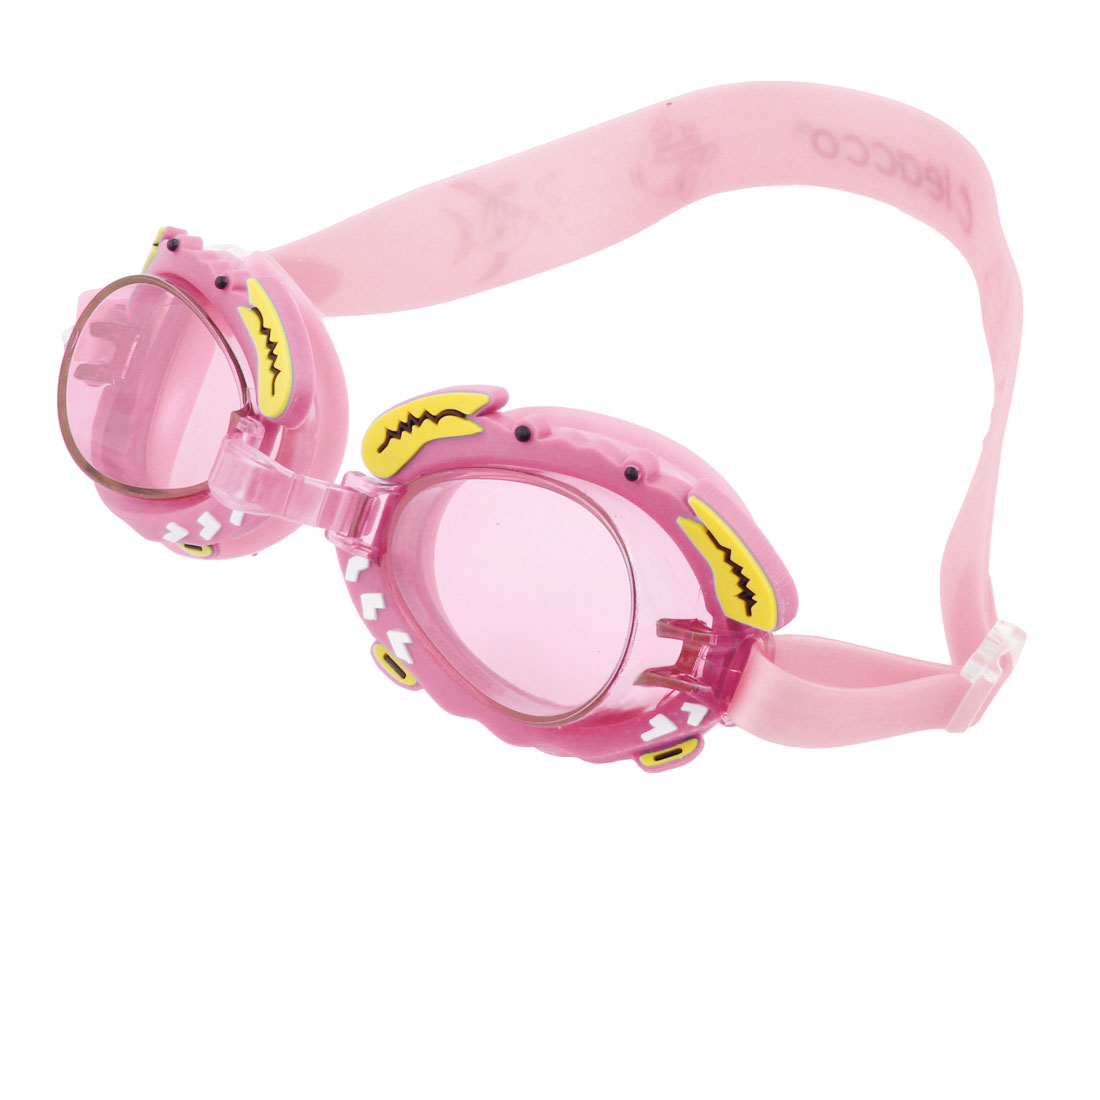 Unique Bargains Children Stretchy Strap Clear Pink Lens Swimming Goggles Glasses w Earcap by